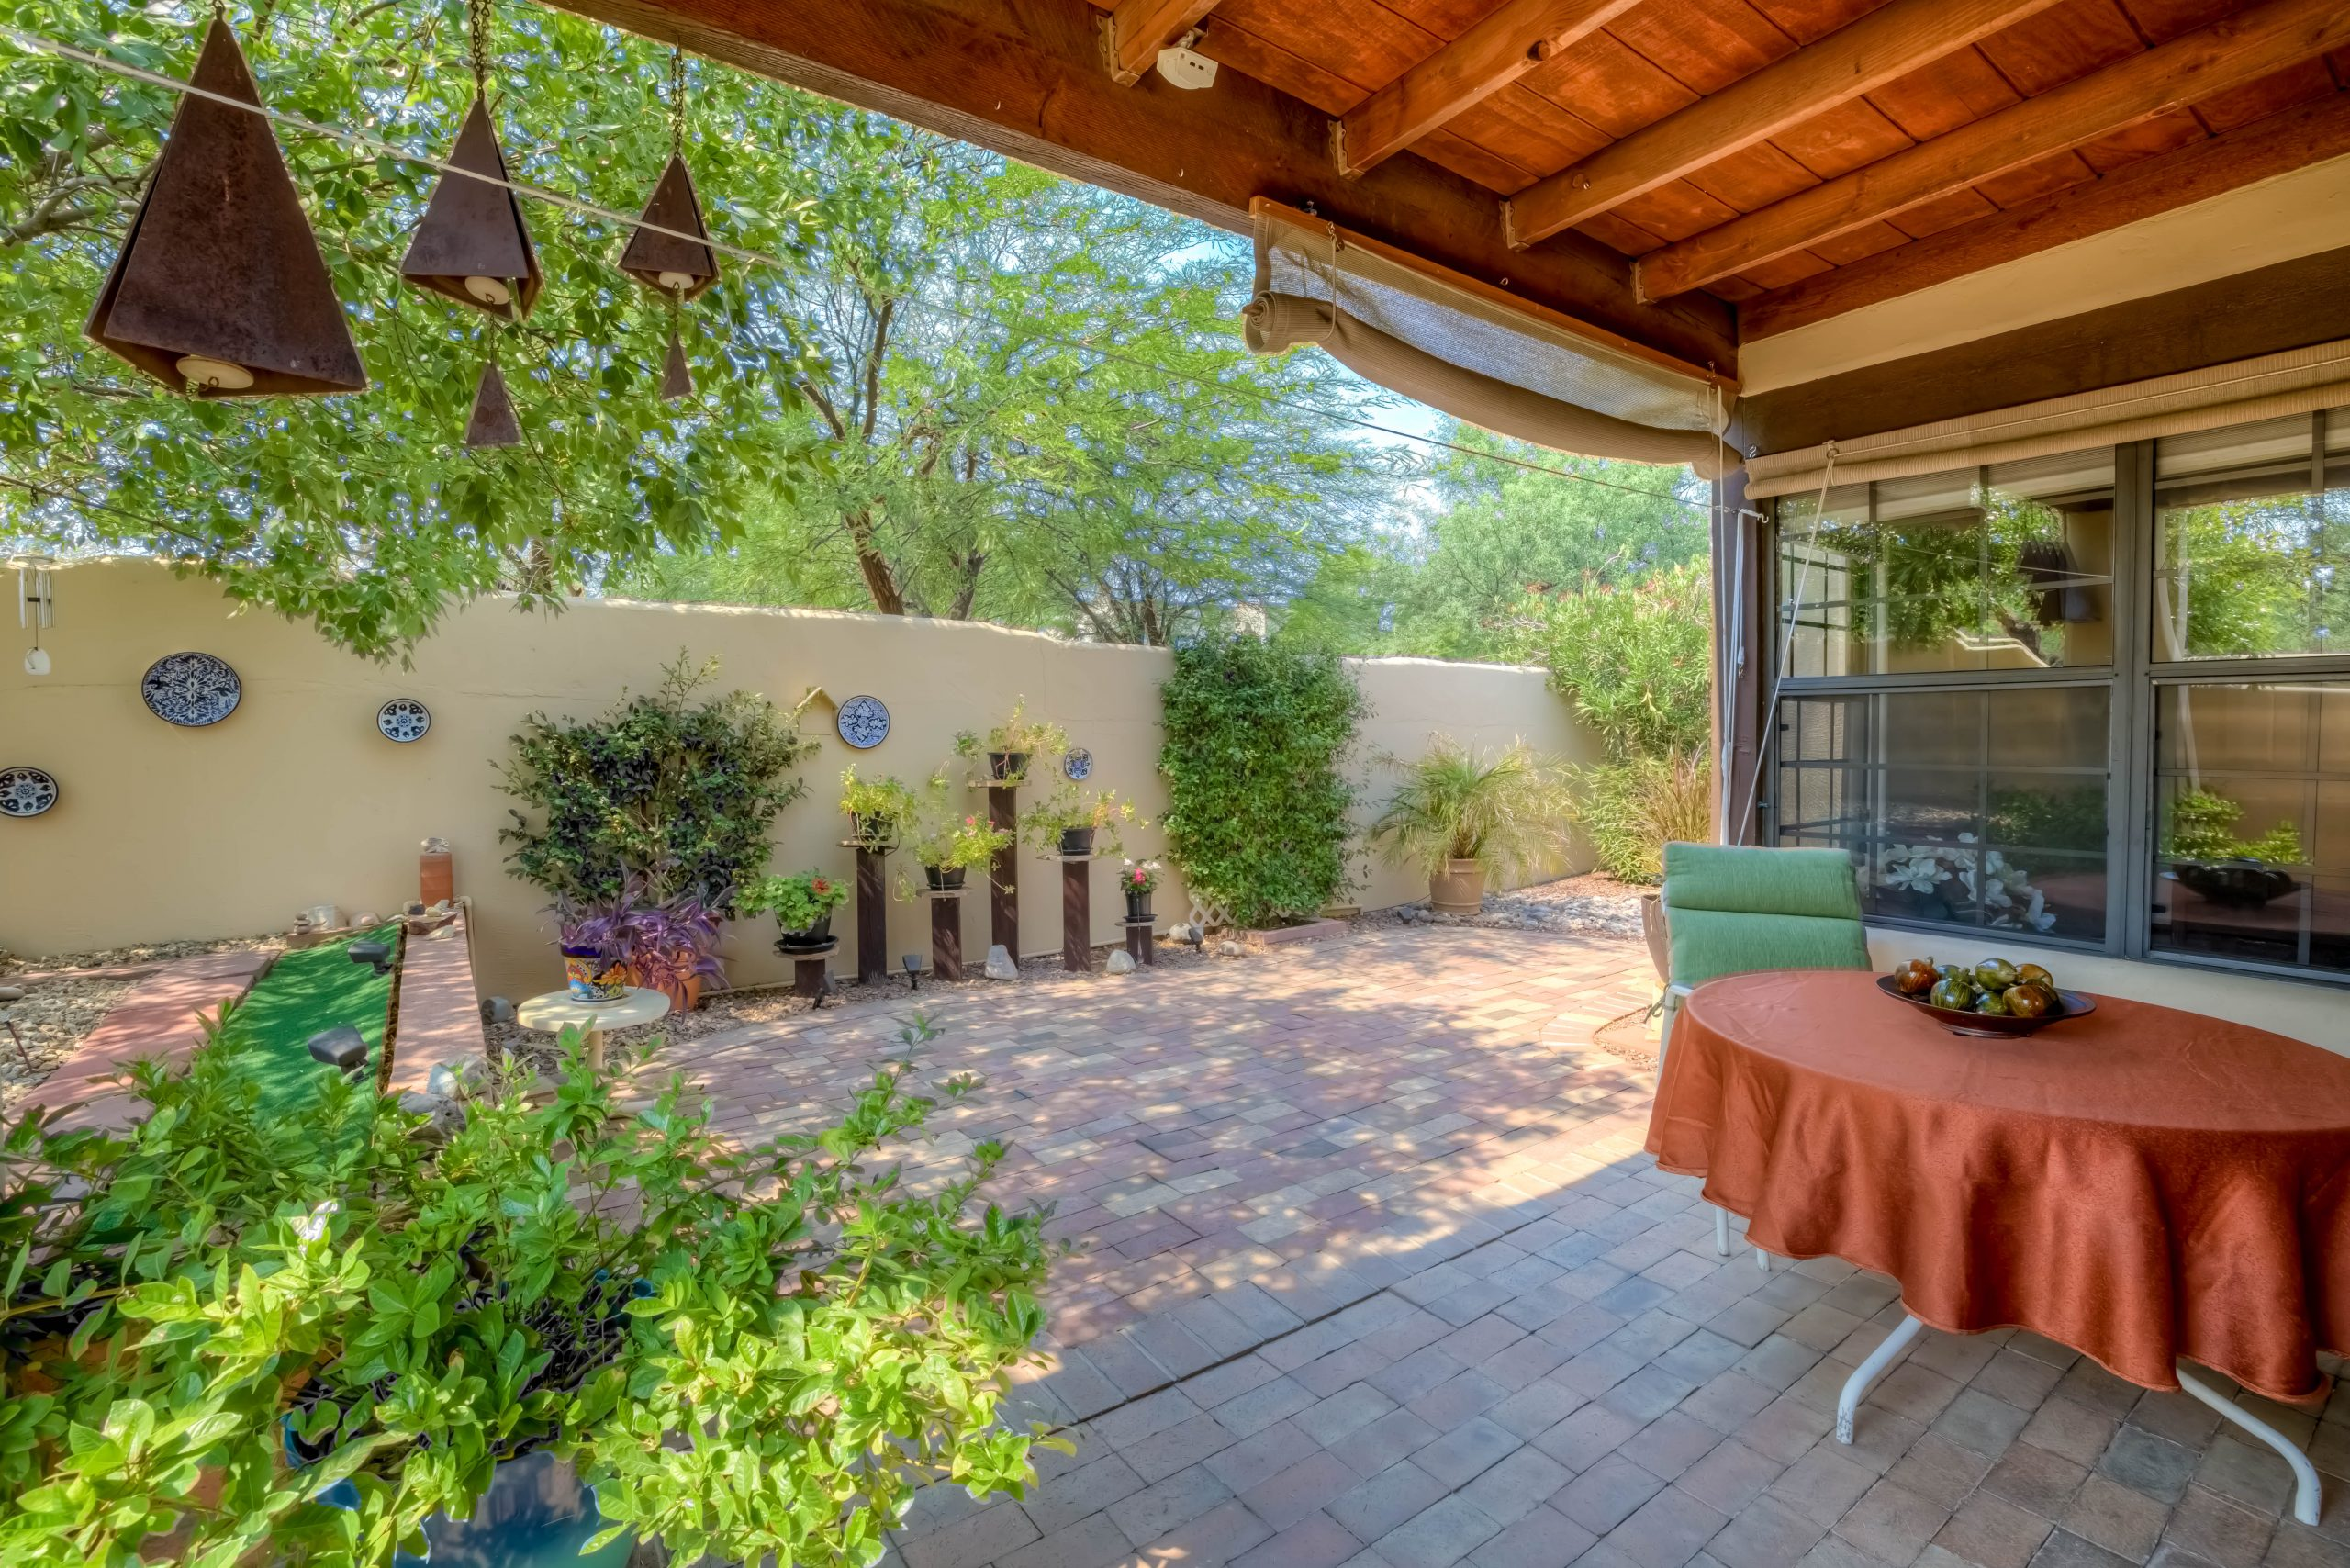 La Sonrisa Townhome in Old Fort Lowell